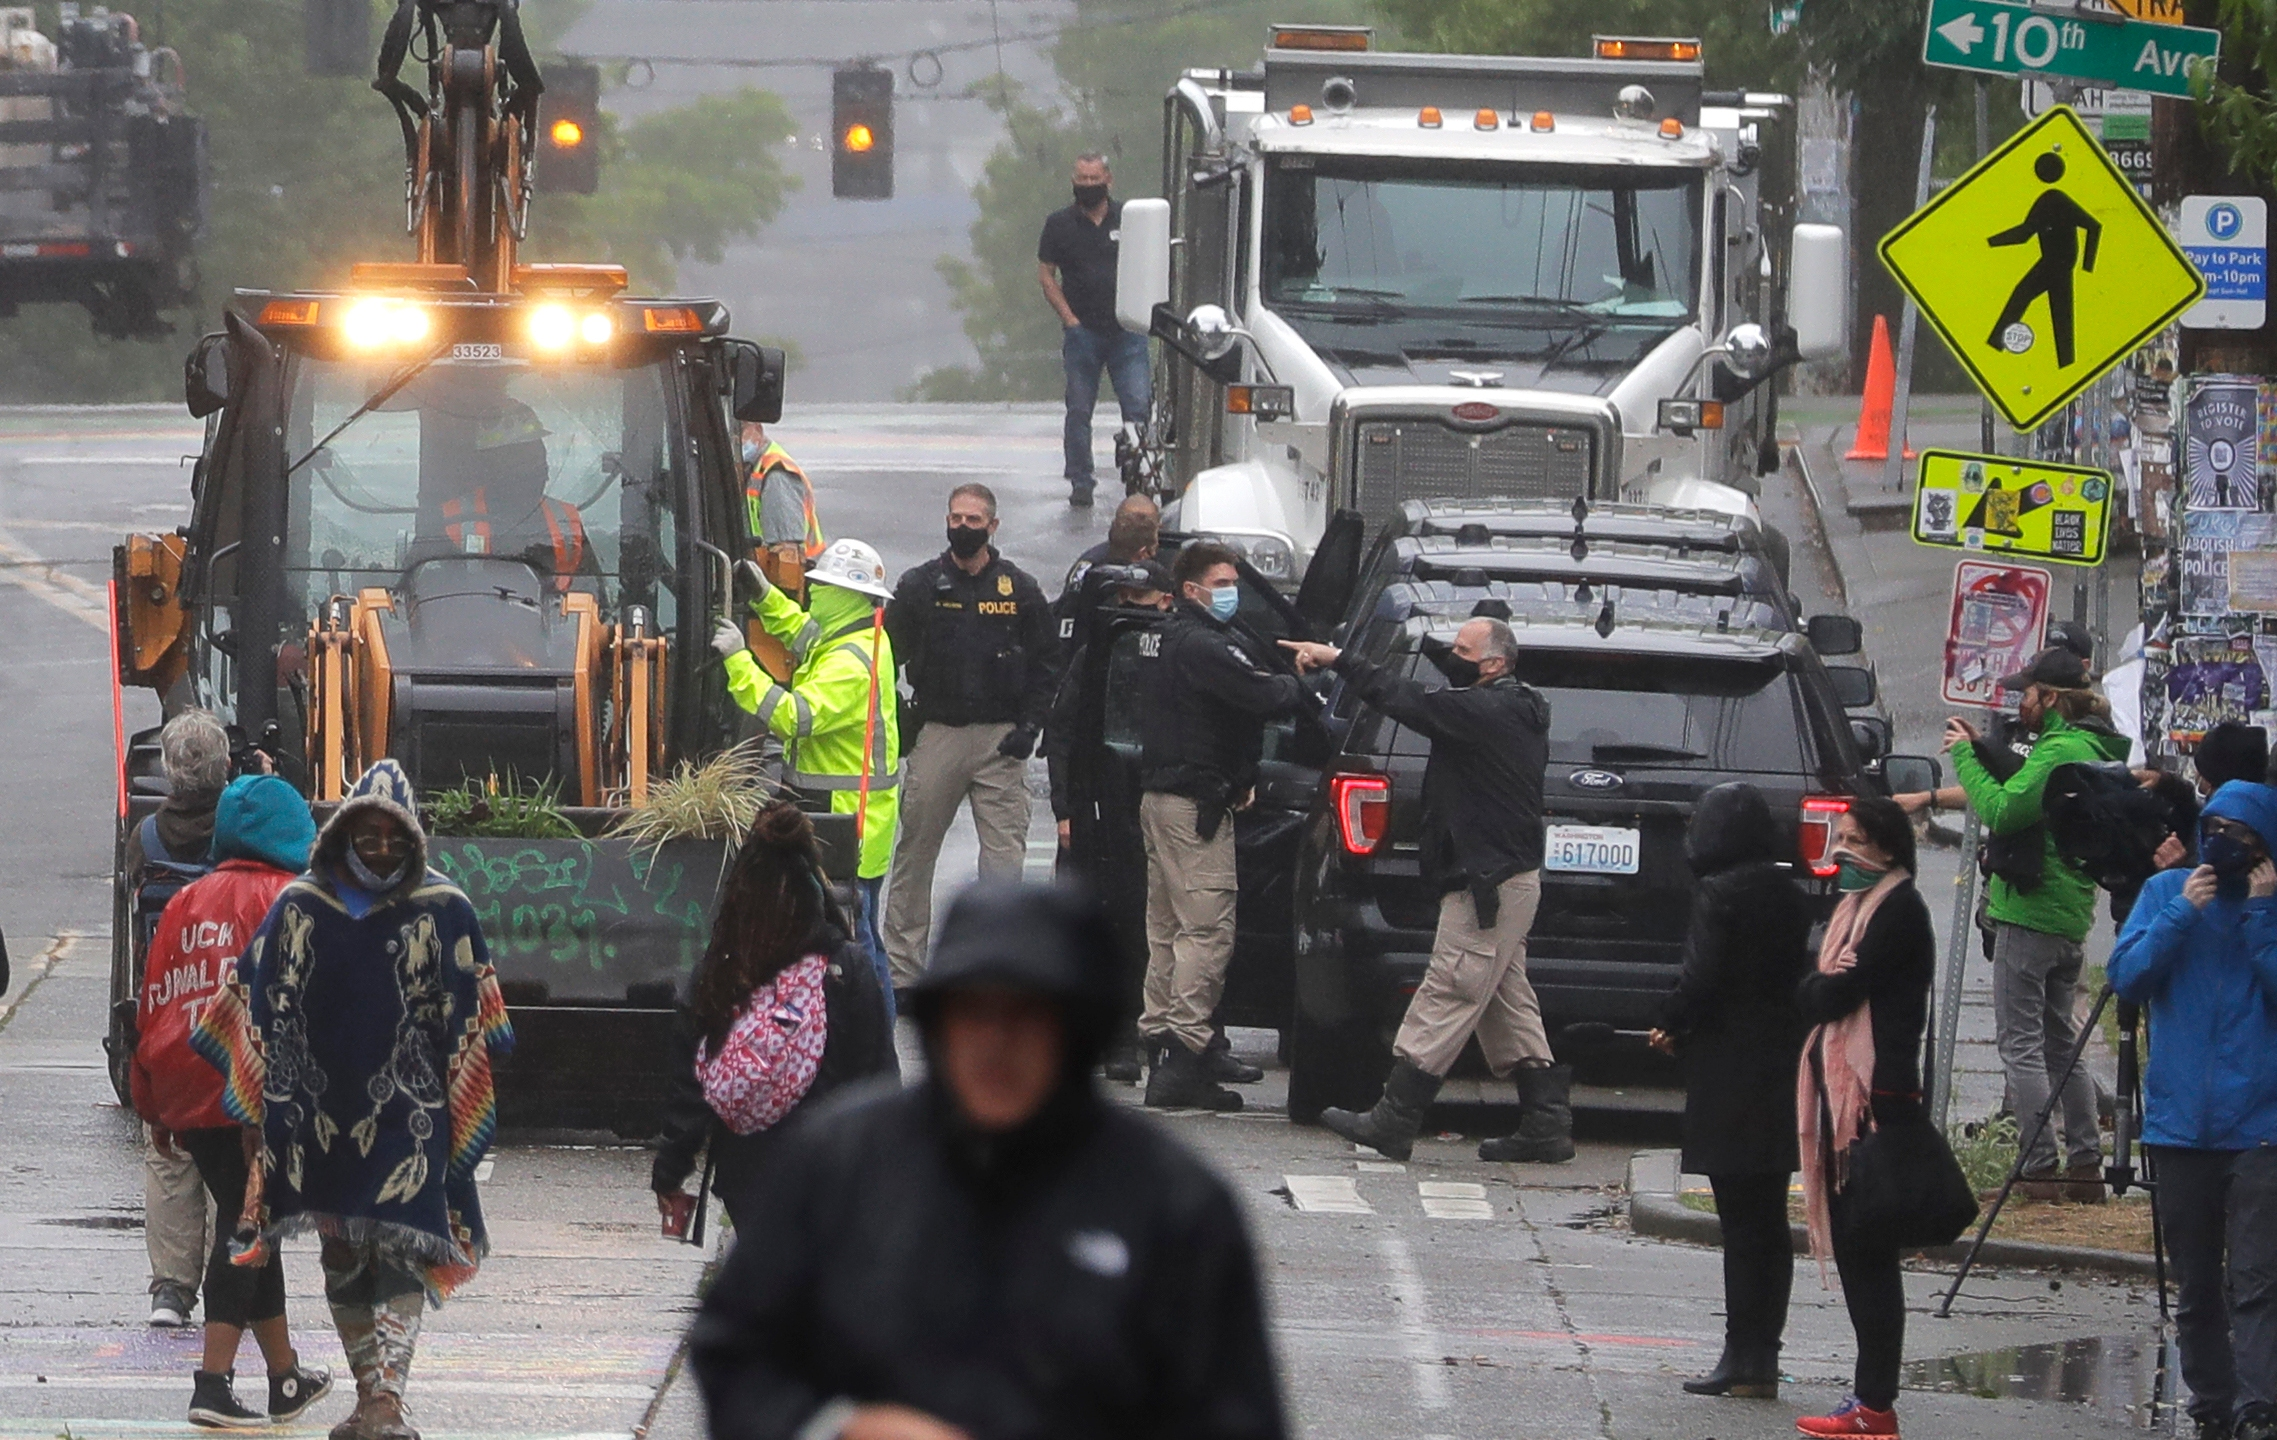 Seattle Police, at right, look on as Department of Transportation workers remove barricades at the intersection of 10th Ave. and Pine St., Tuesday, June 30, 2020 at the CHOP (Capitol Hill Occupied Protest) zone in Seattle. (AP Photo/Ted S. Warren)